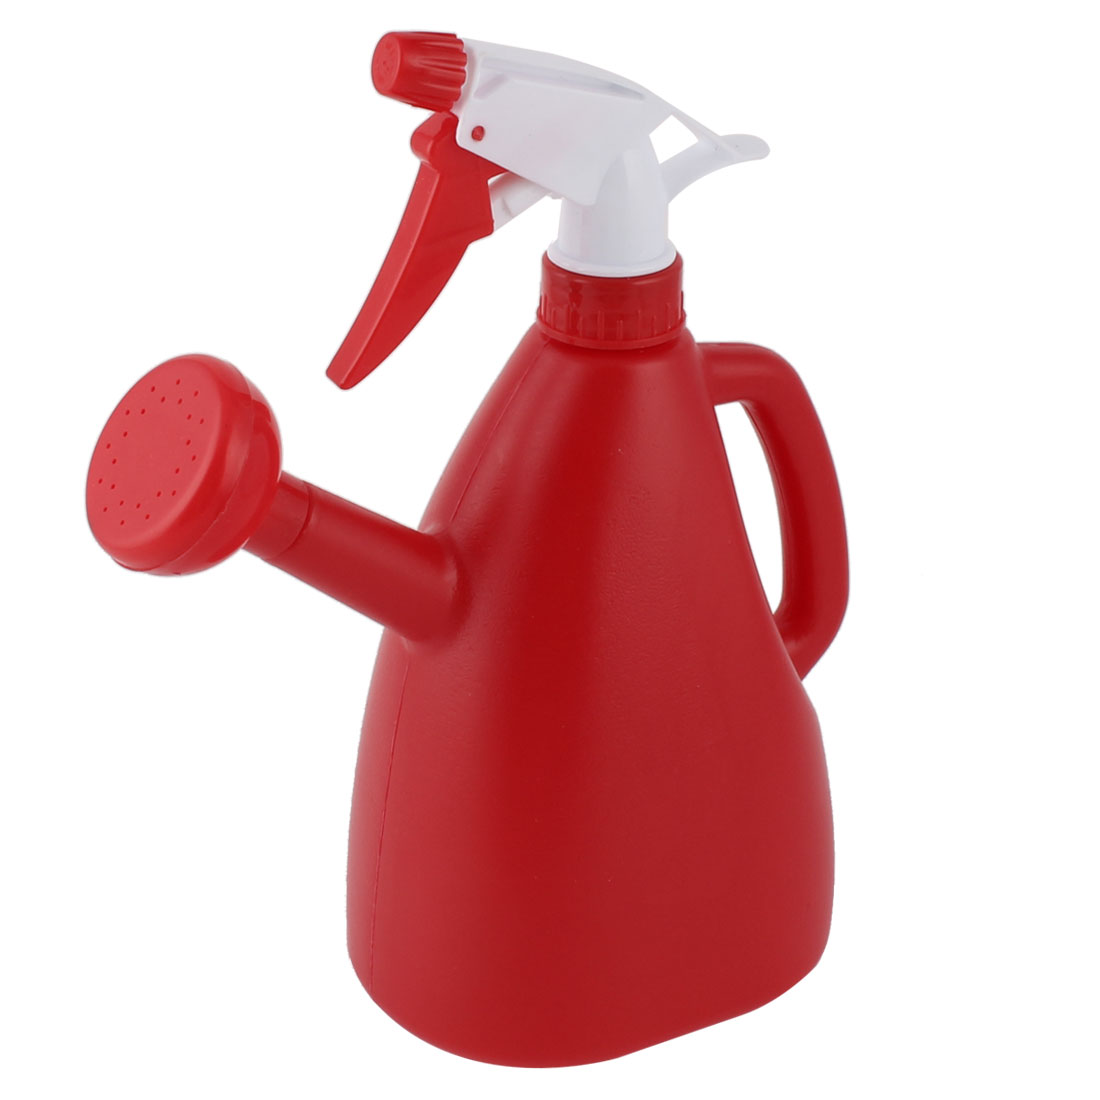 Garden Flower Plant Plastic Dual Purpose Double-end Trigger Spray Water Bottle Red 890ml